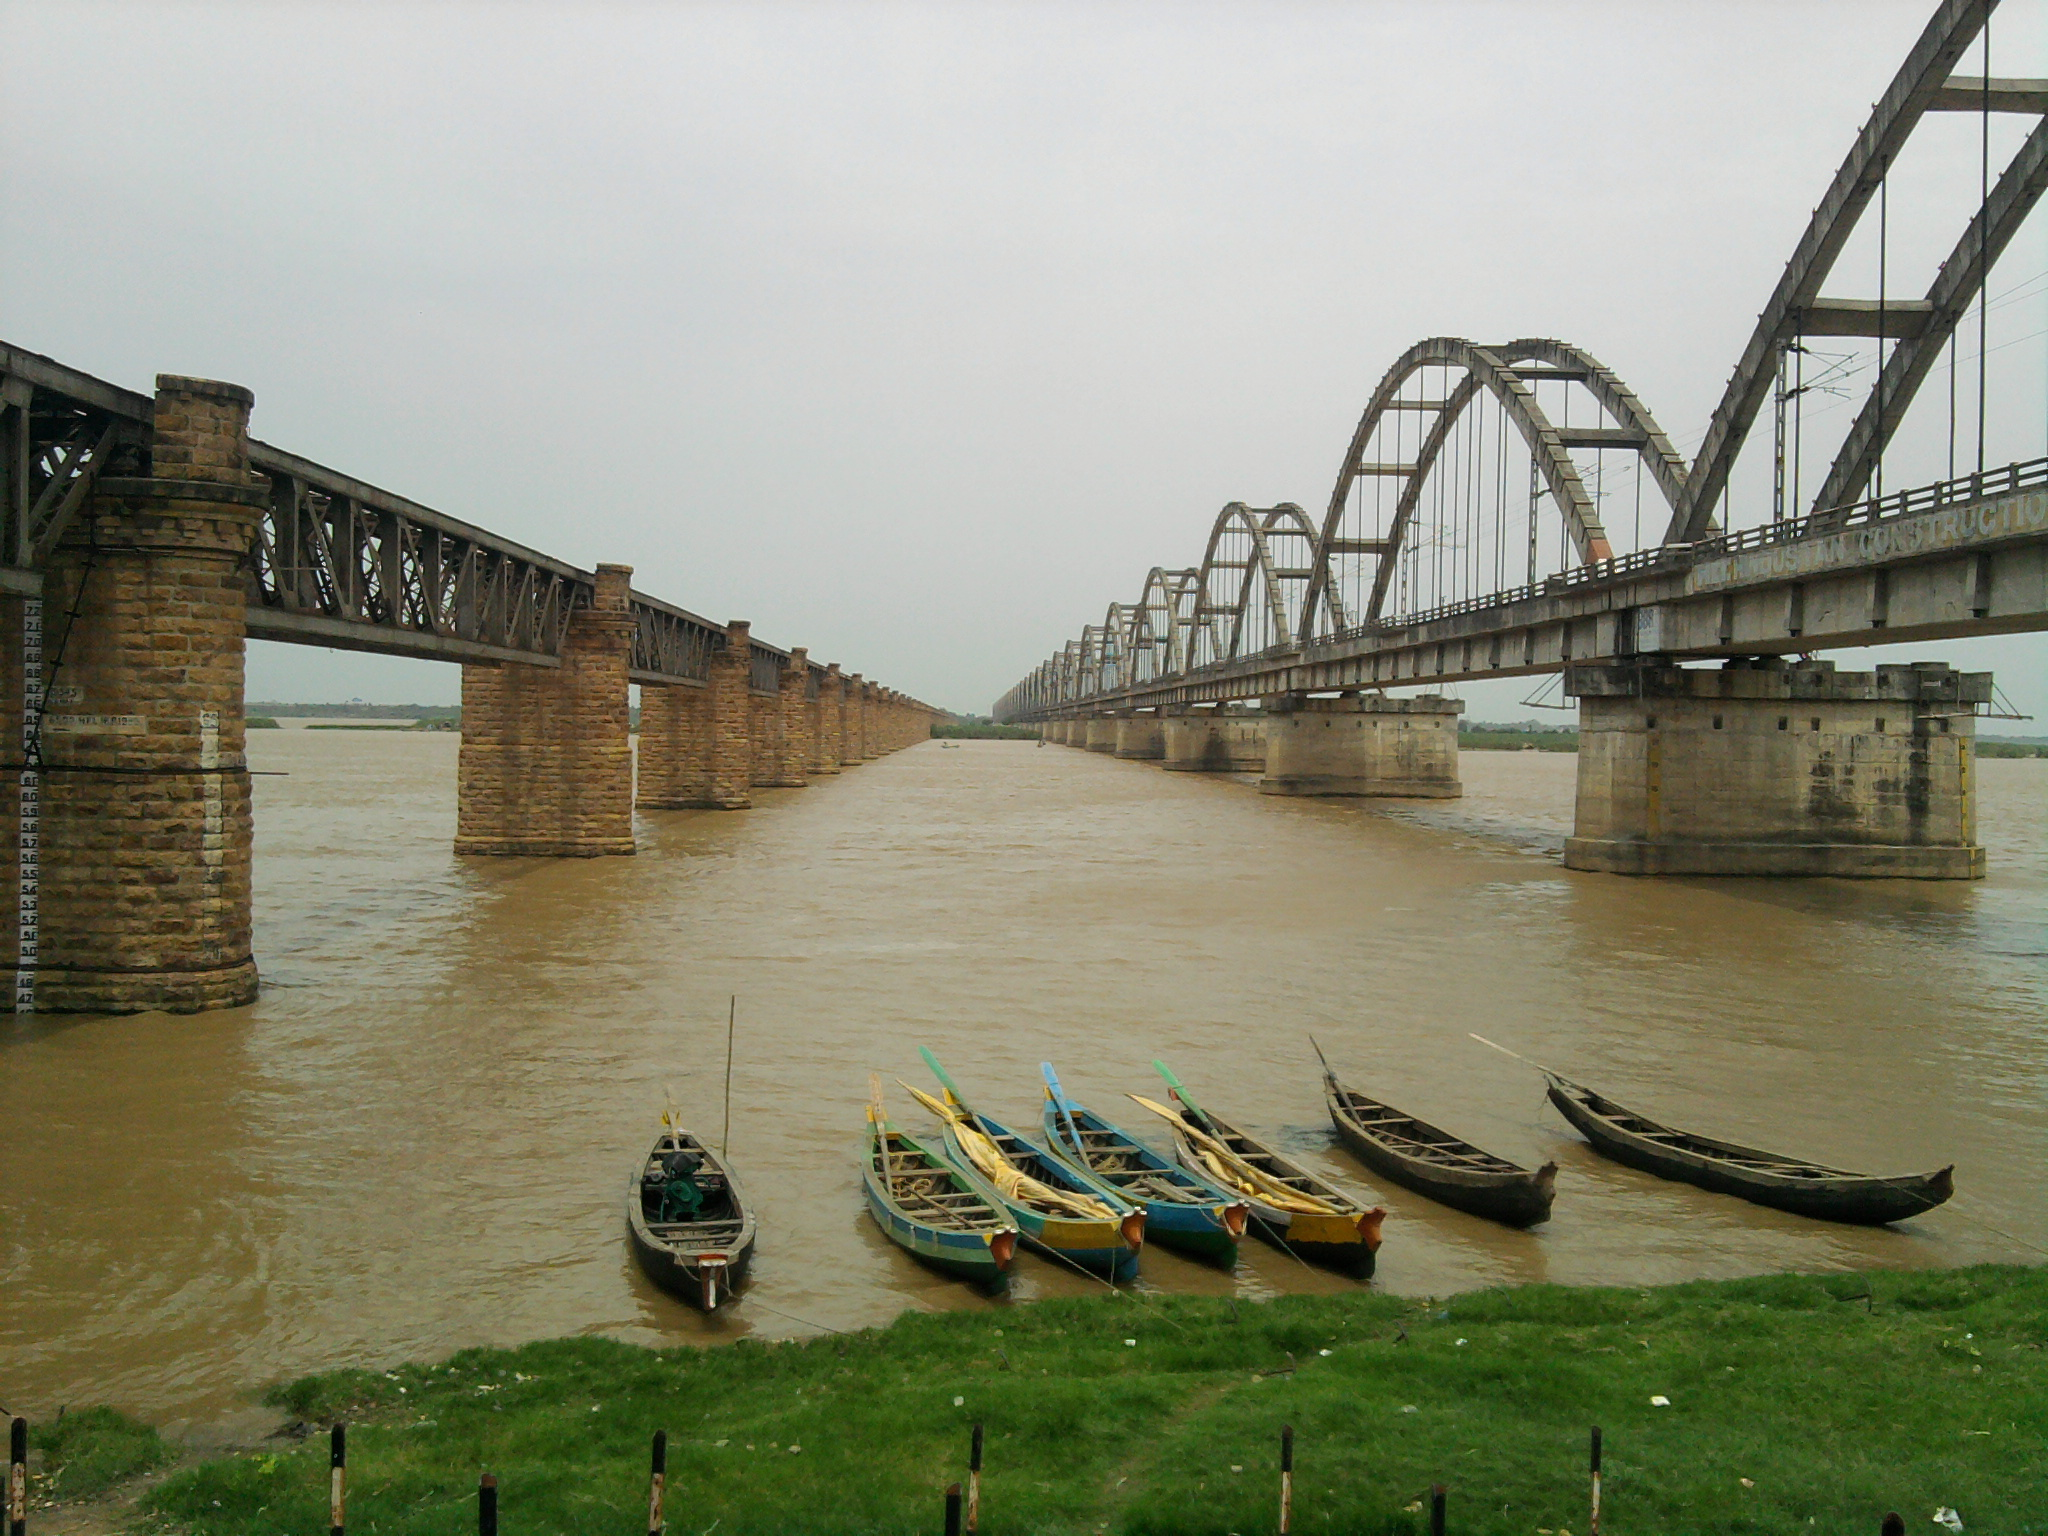 Rajahmundry: The cultural capital of Andhra Pradesh